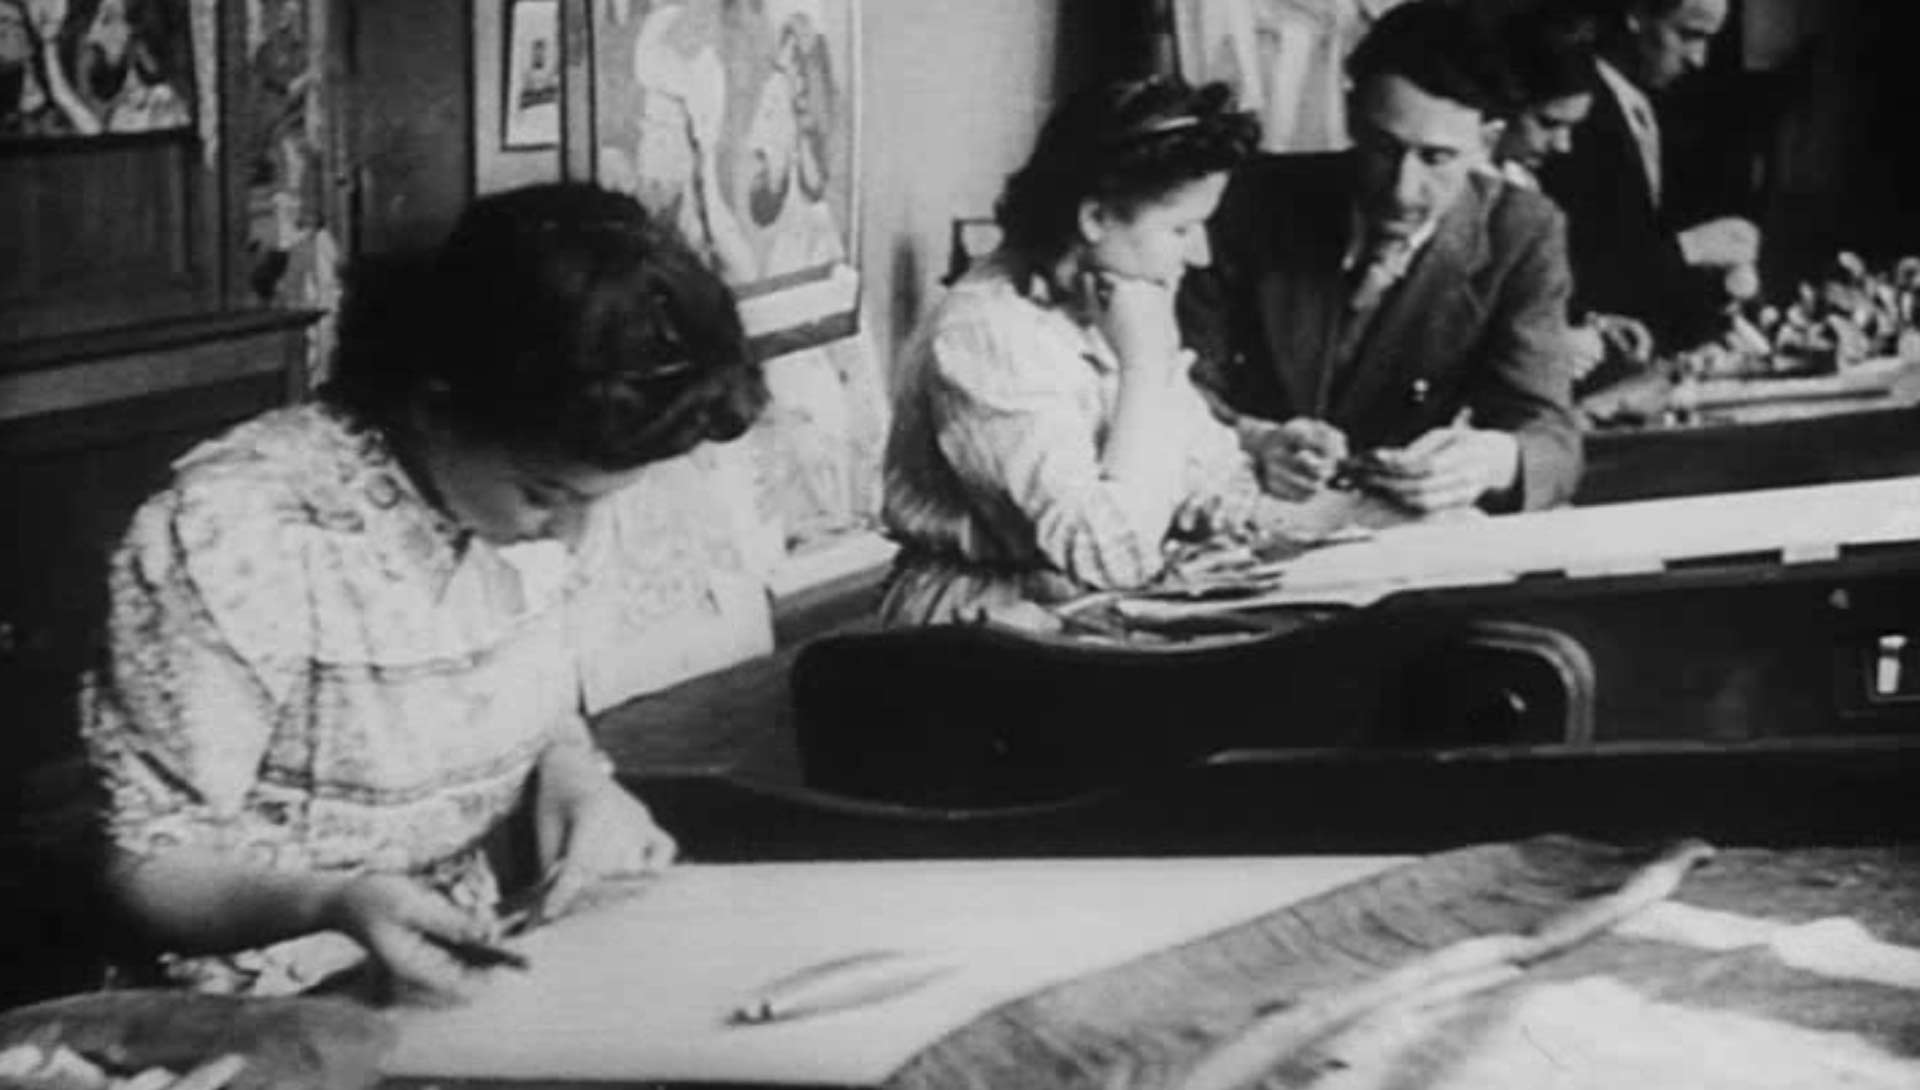 Tapisseries de France, documentaire de Jean Tedesco (1895-1958)